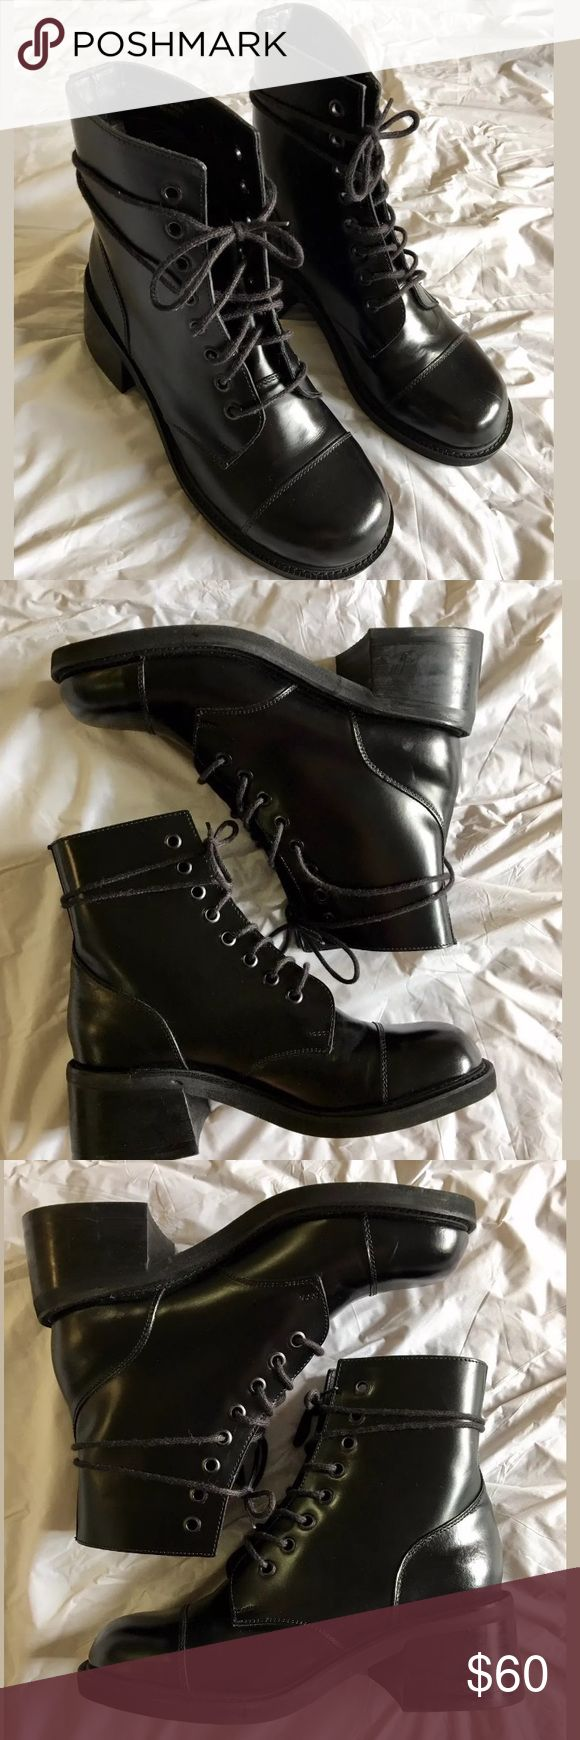 "Steve Madden Leather Moto Combat Boots Lace up black leather boots. Worn once , look brand new. 2"" heel & height 7"" Steve Madden Shoes Combat & Moto Boots"